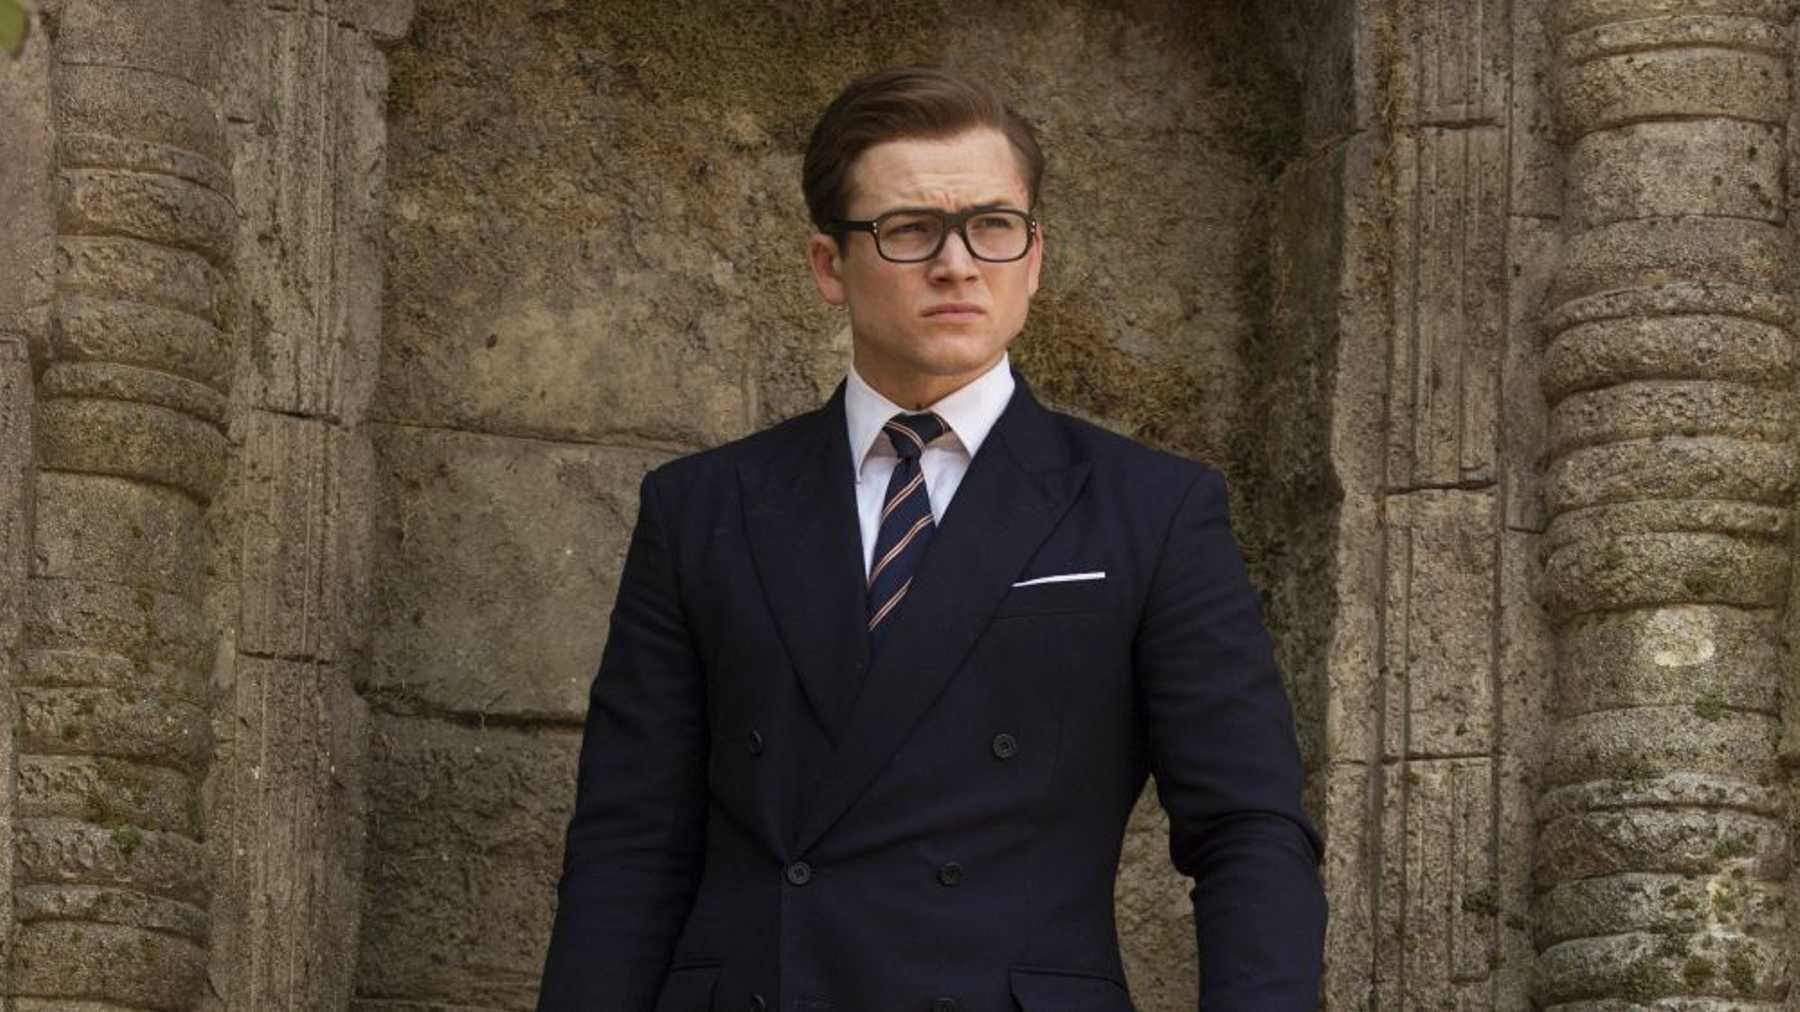 'Kingsman 3' already has a script, says Taron Egerton